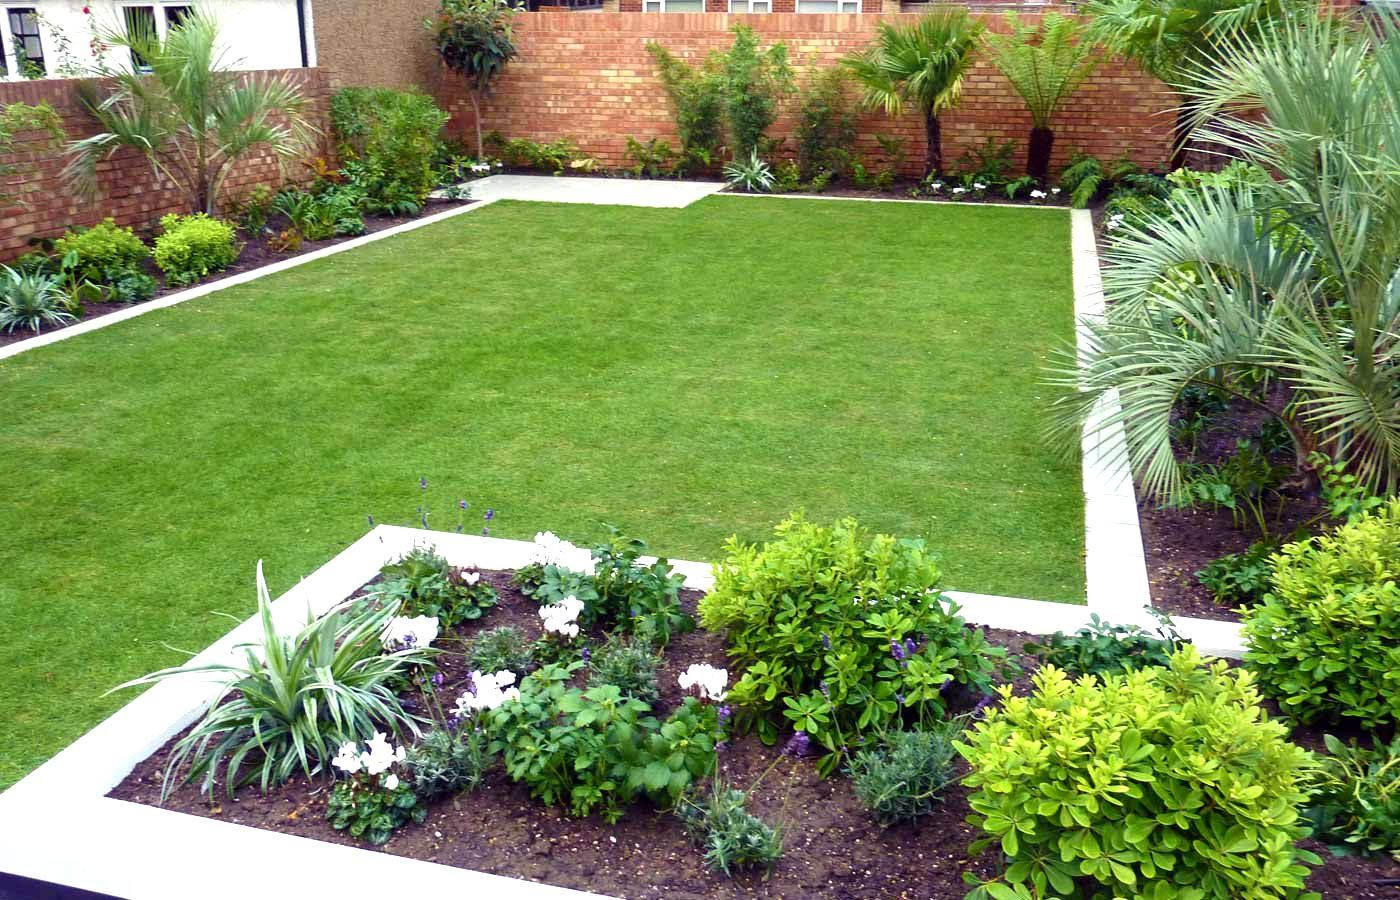 Simple garden designs no fret small garden design for Outdoor garden design